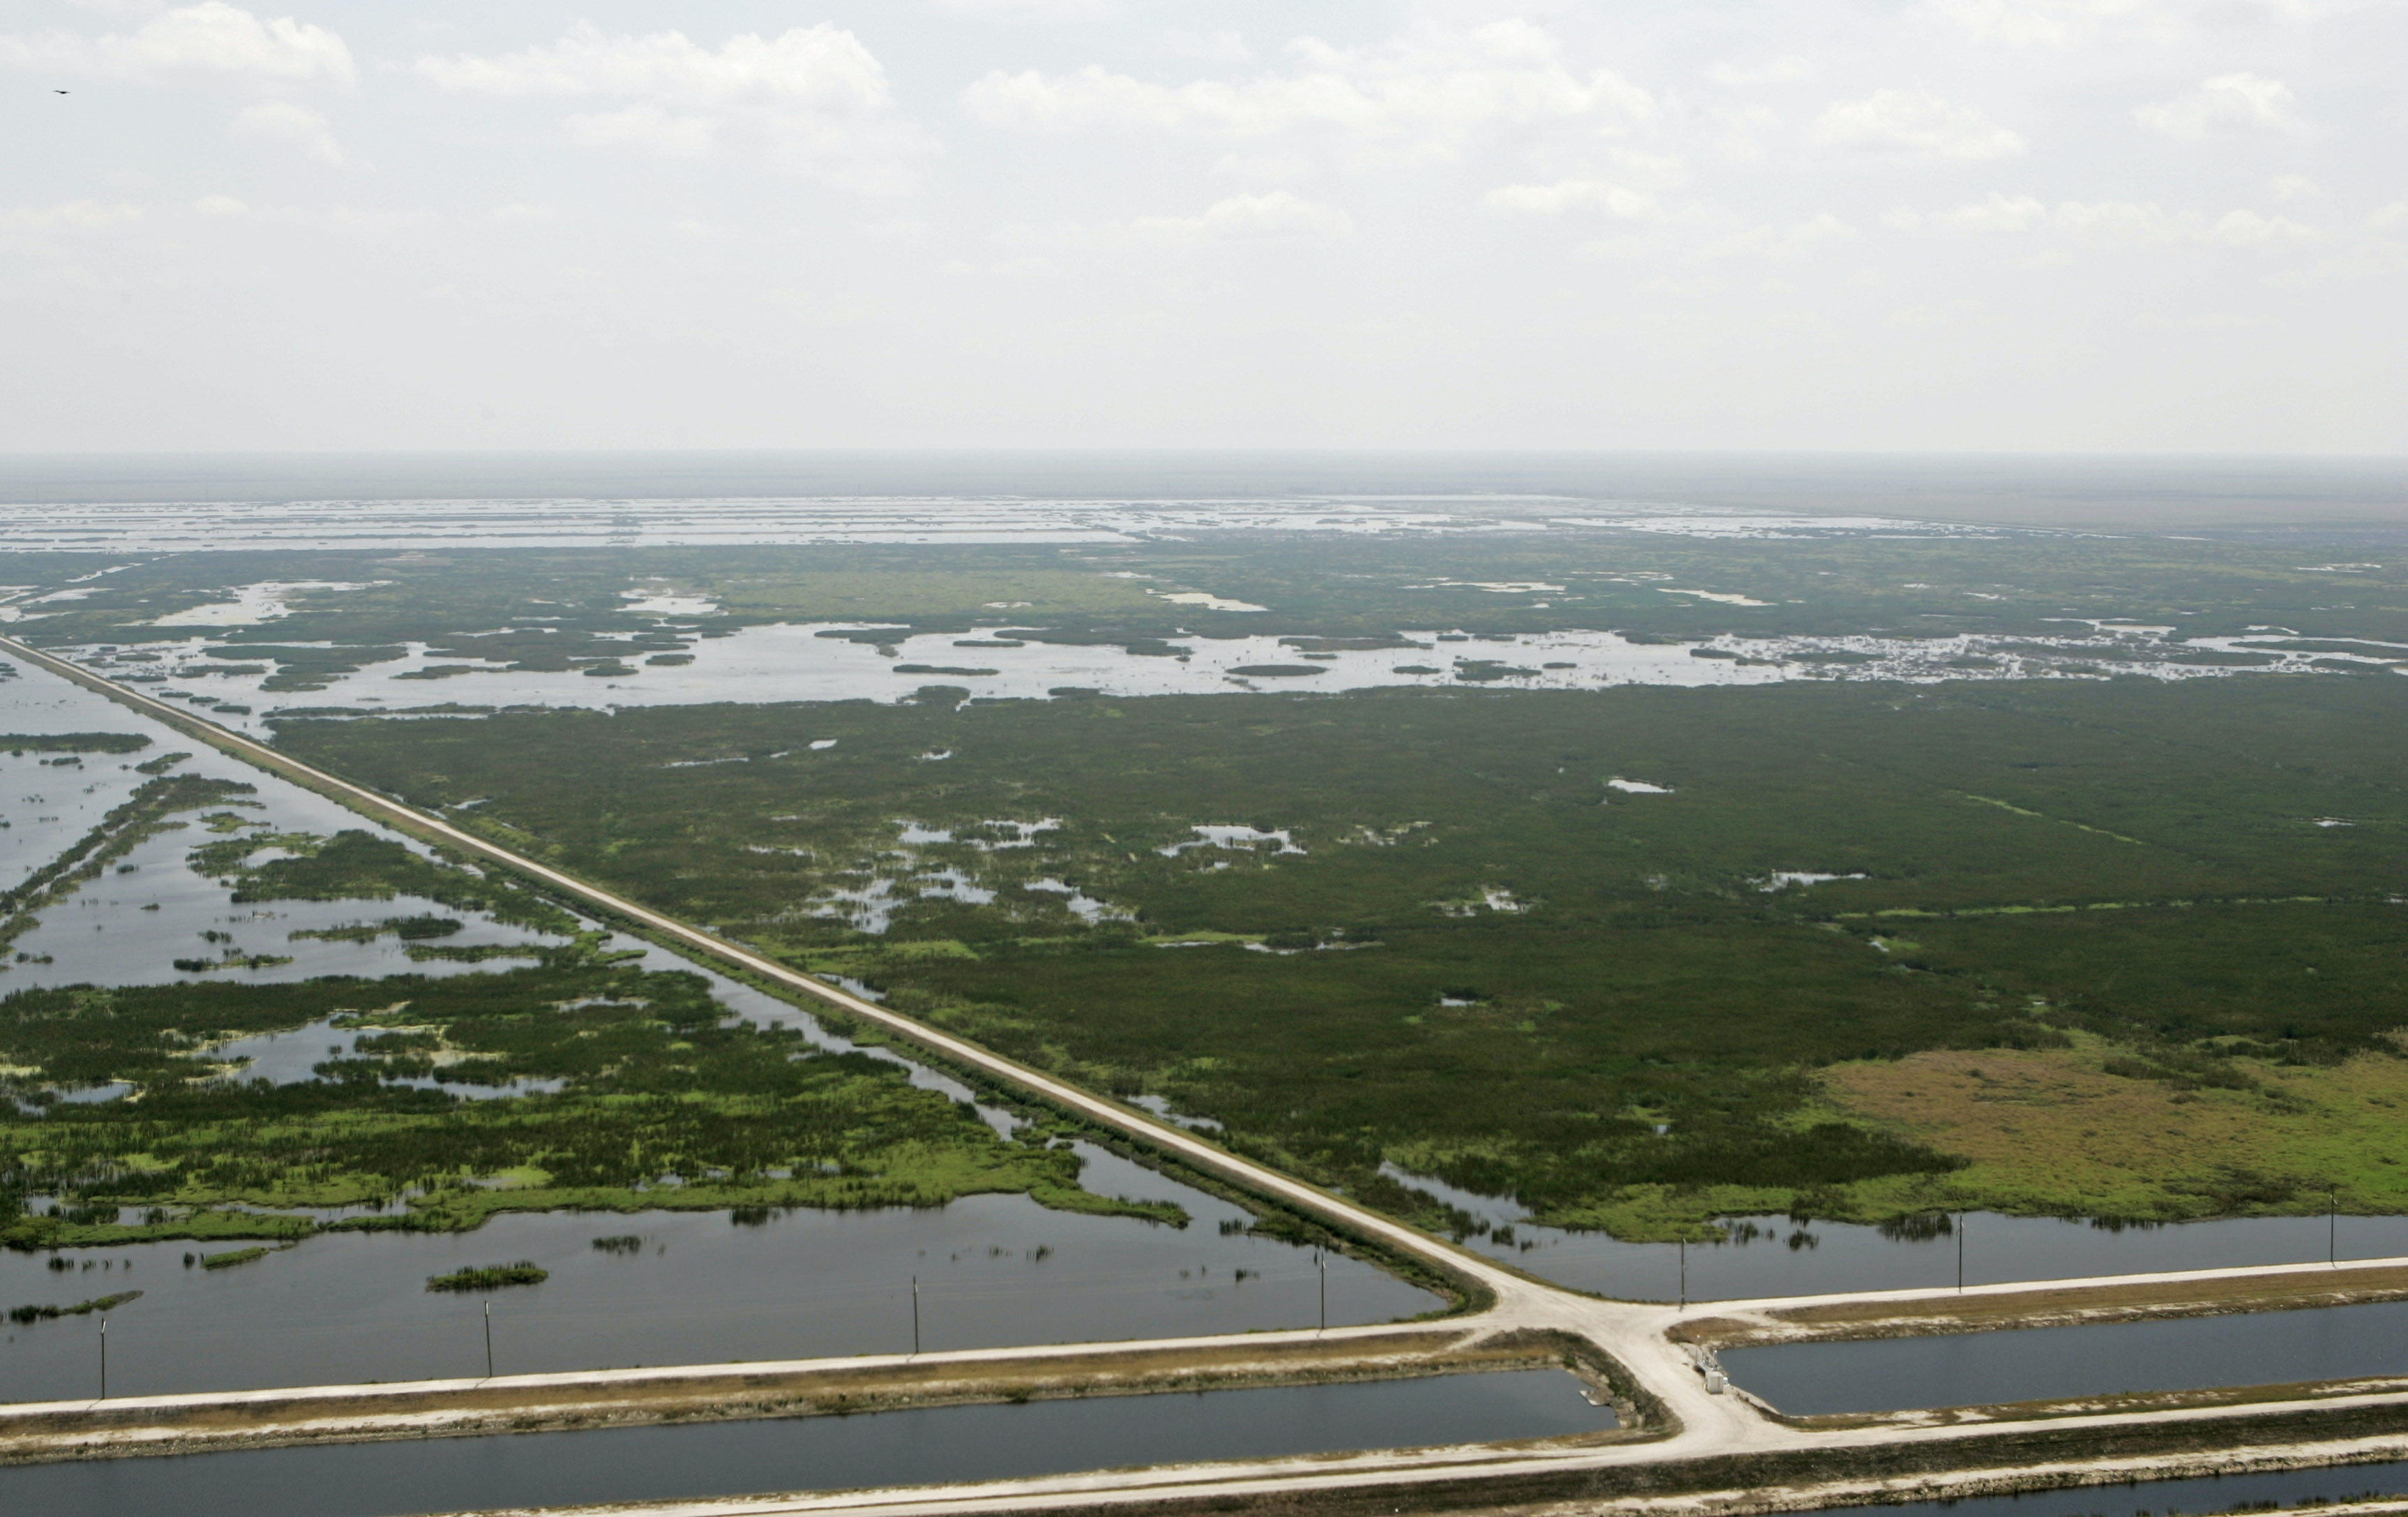 ** APN ADVANCE FOR SUNDAY, MAY 28 **An overhead view of the Florida Everglades Tuesday, April 4, 2006 in the Palm Beach County area of the Everglades, Fla. In Florida, where the Everglades has become a managed network of canals and levees, scientists are facing the daunting task of managing more water from frequent storms to keep developed areas from flooding and to cleanse agricultural runoff of fertilizers and pesticides before it bleeds into surrounding wetlands. (AP Photo/Alan Diaz)